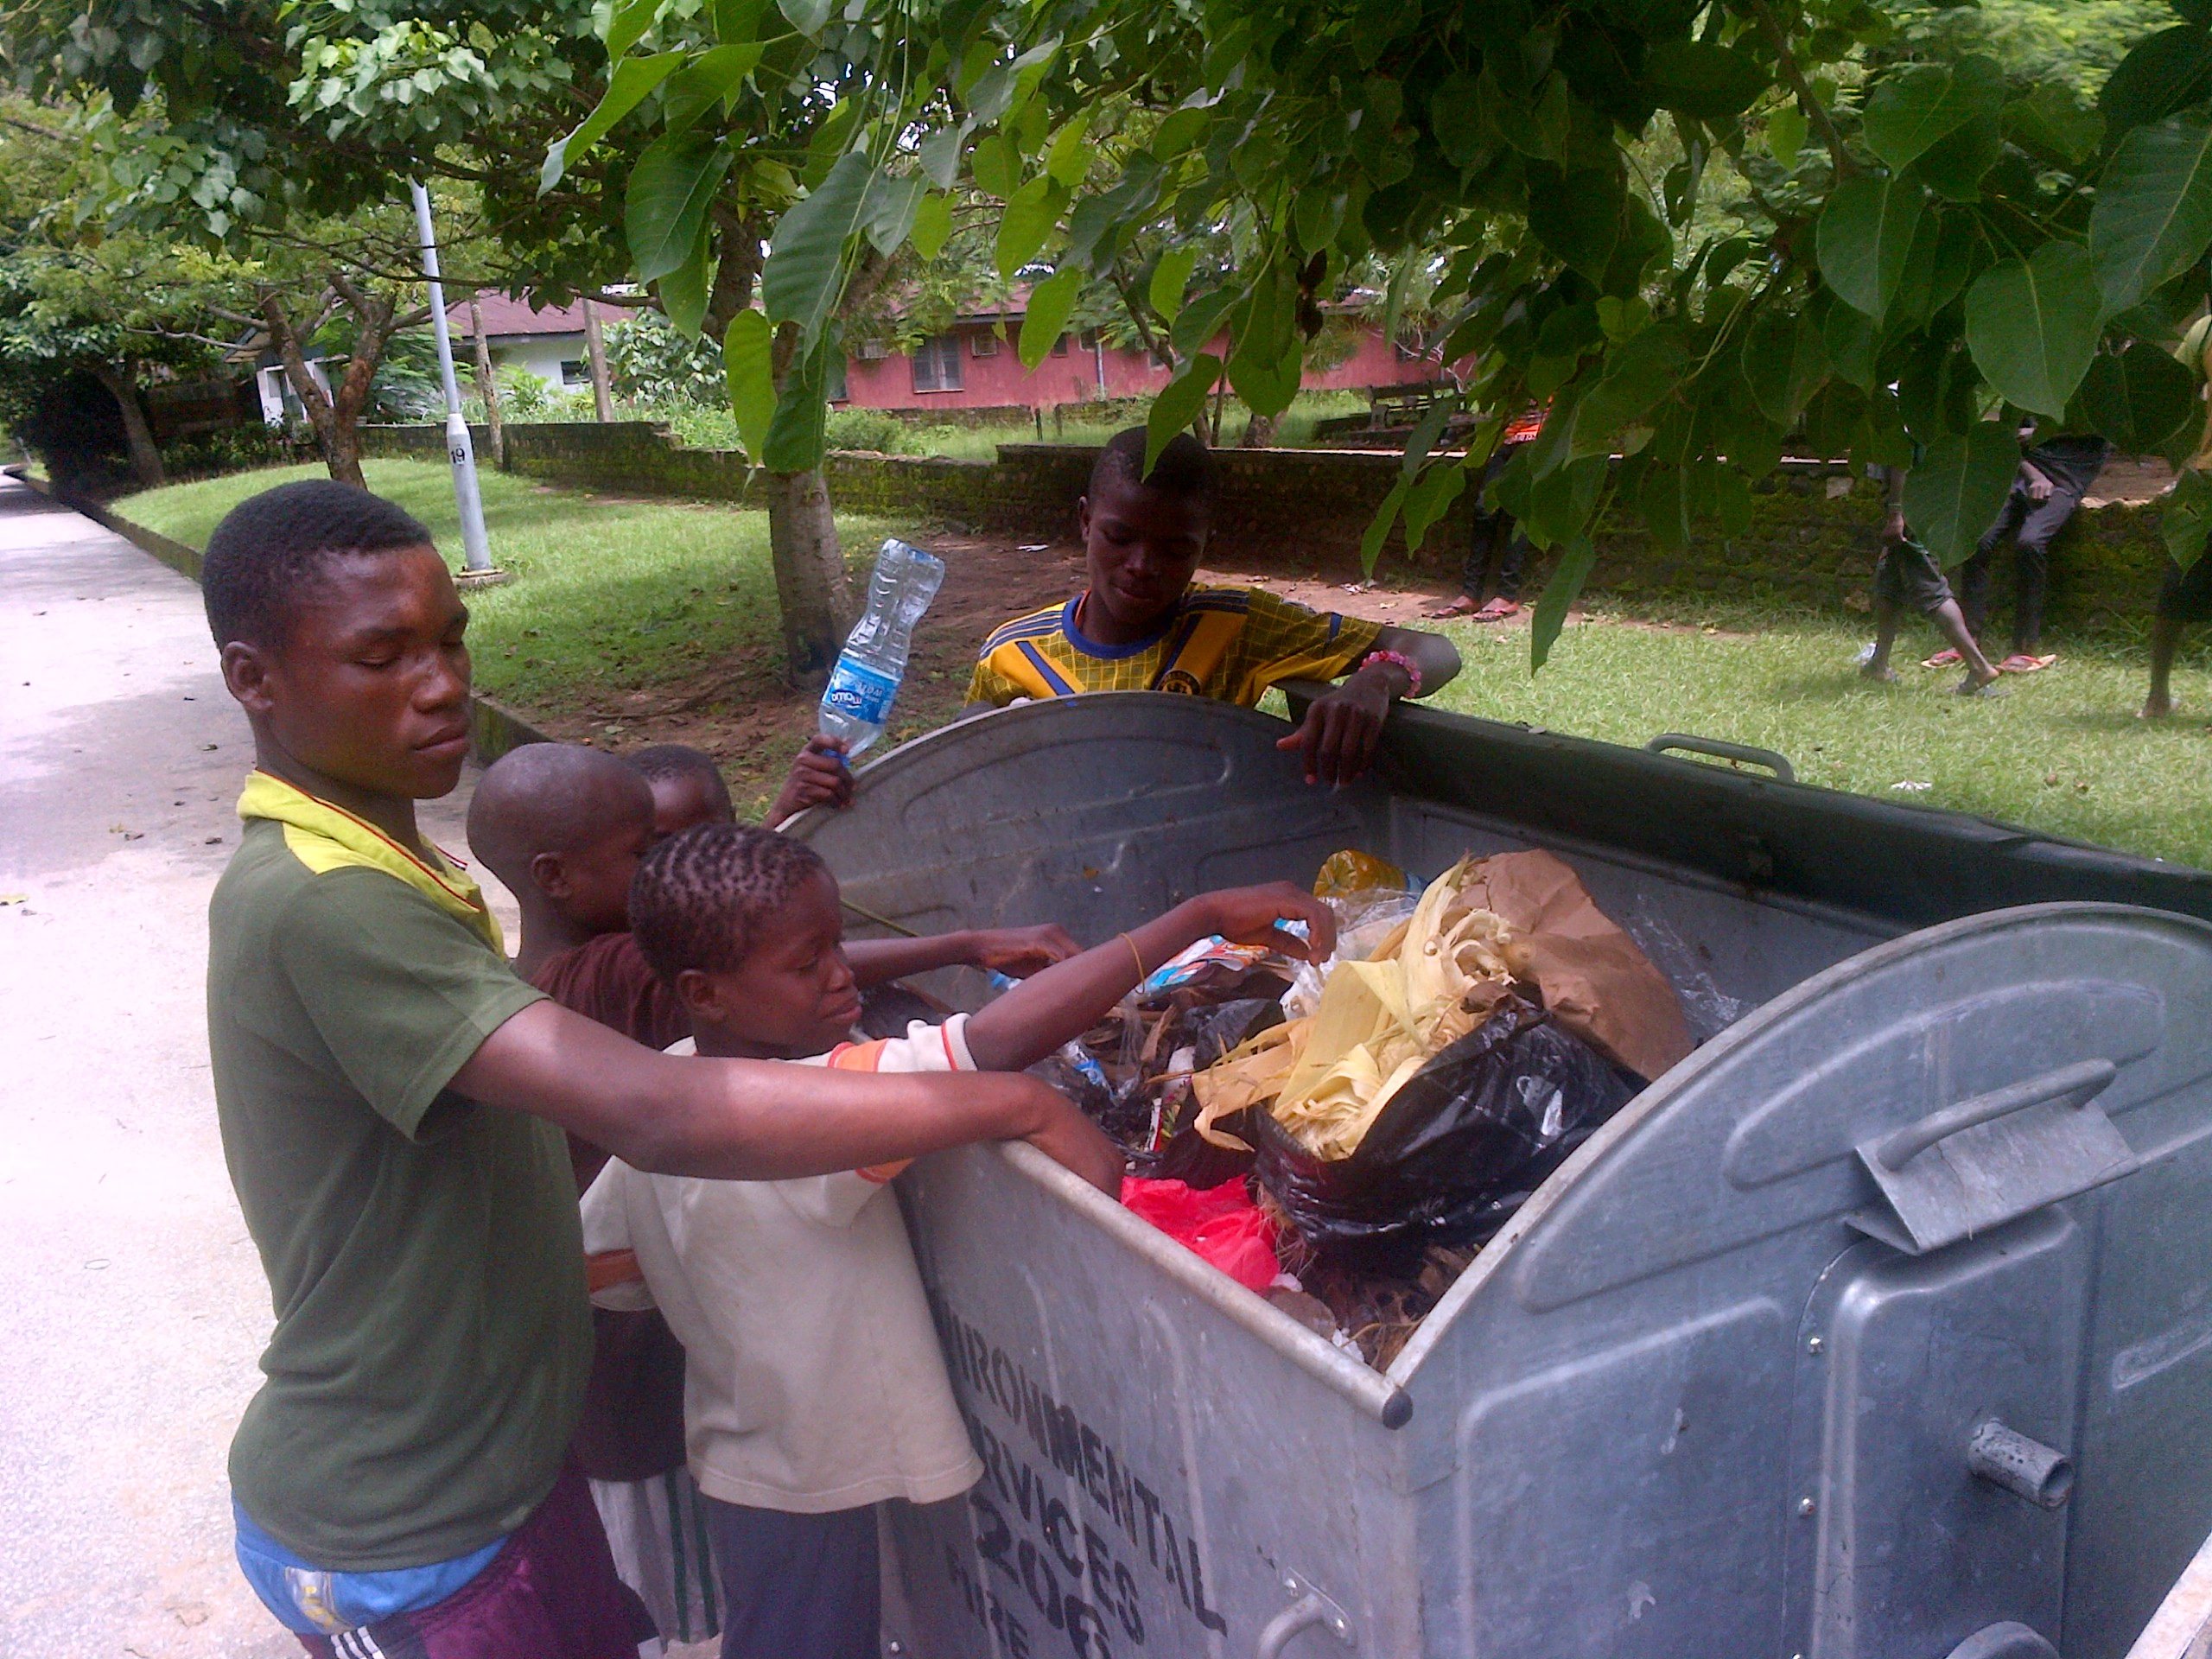 Street children picking food from a dustbin in Calabar